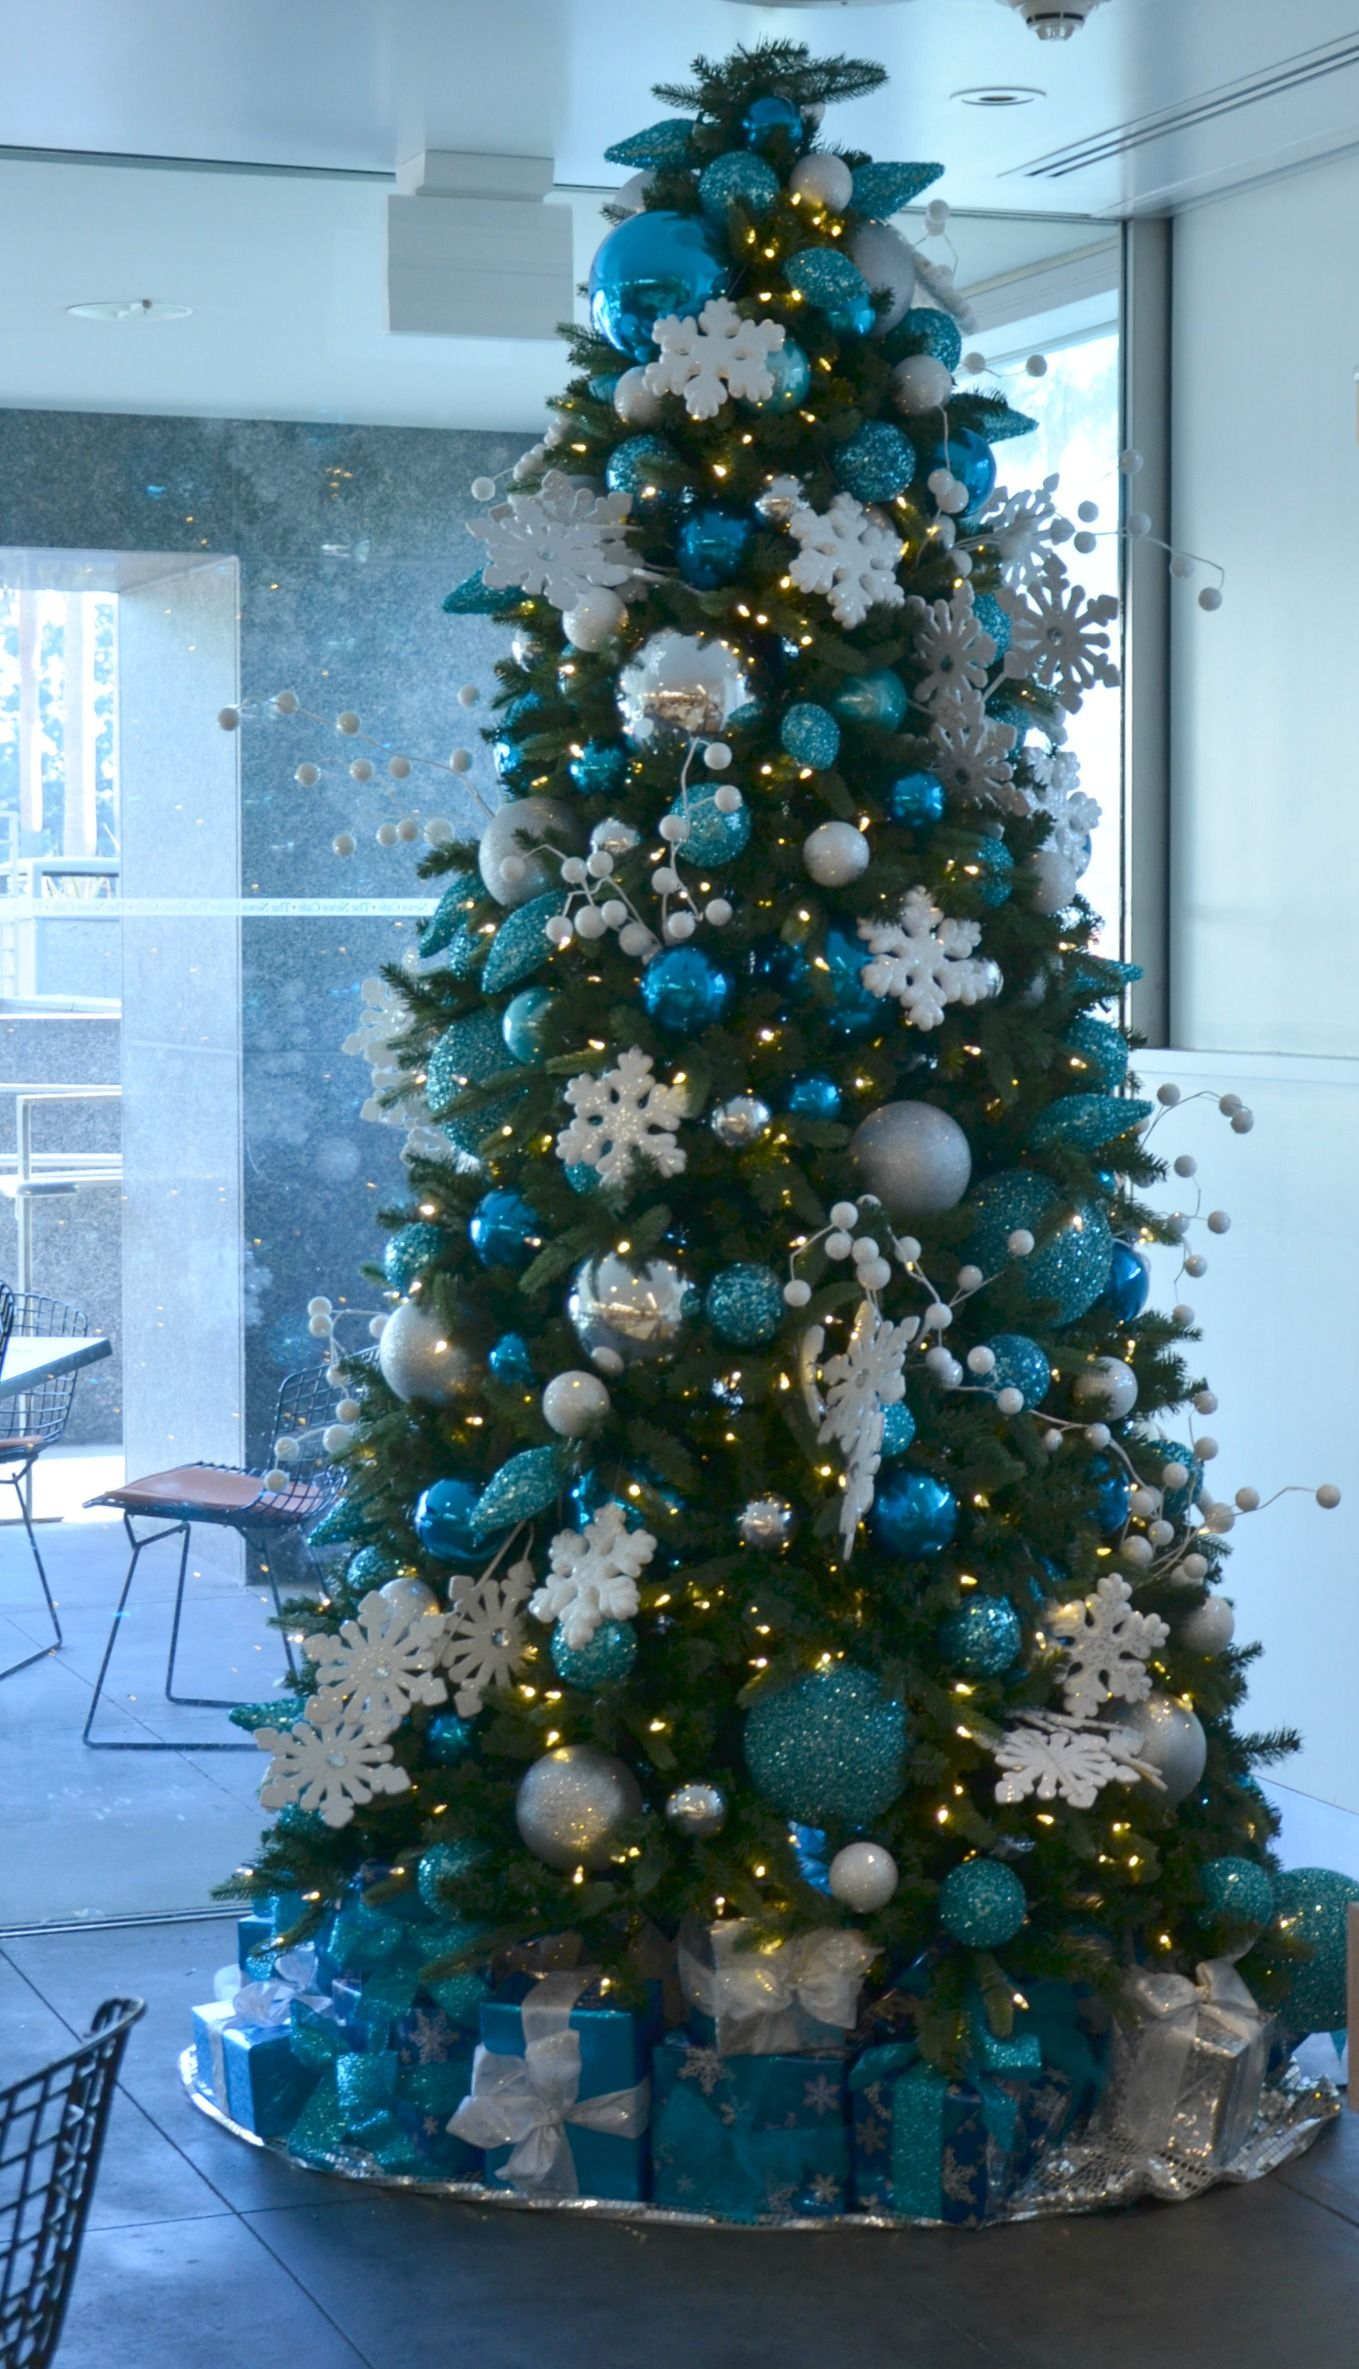 blue and white snowflake decorated christmas tree rental commercial christmas decorator christmas tree rentals christmas decoration rentals - Rent Christmas Decorations